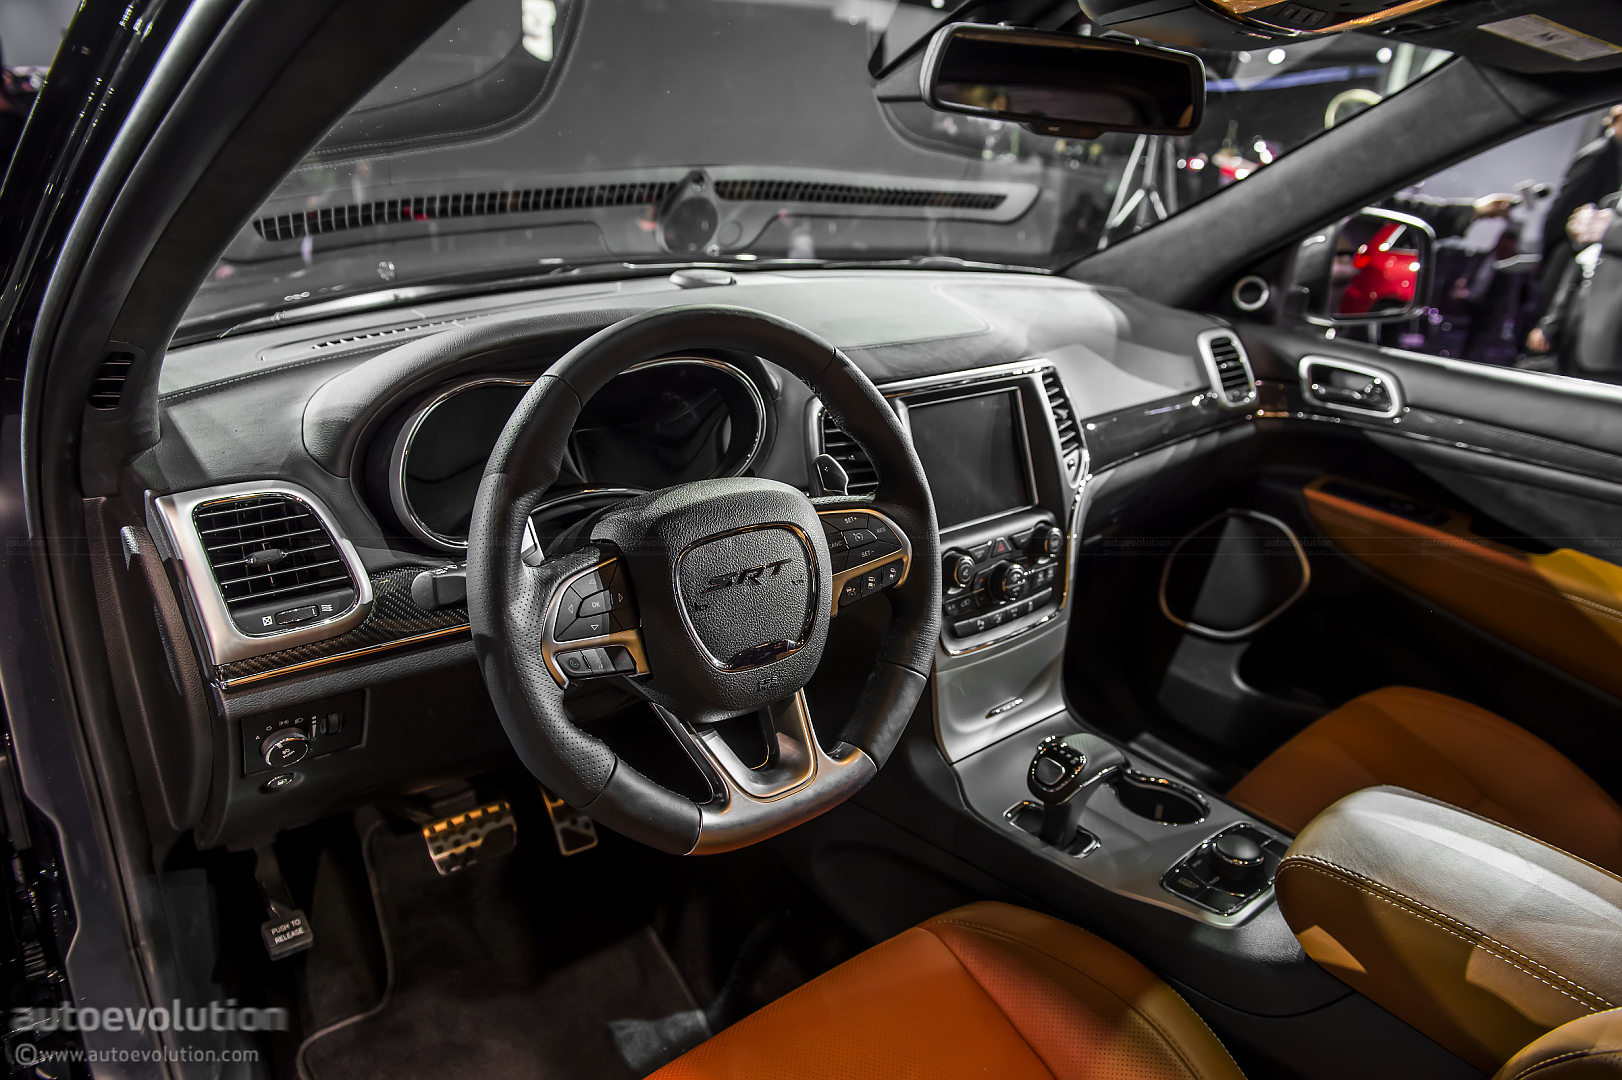 2013 naias: jeep grand cherokee srt8 [live photos] - autoevolution